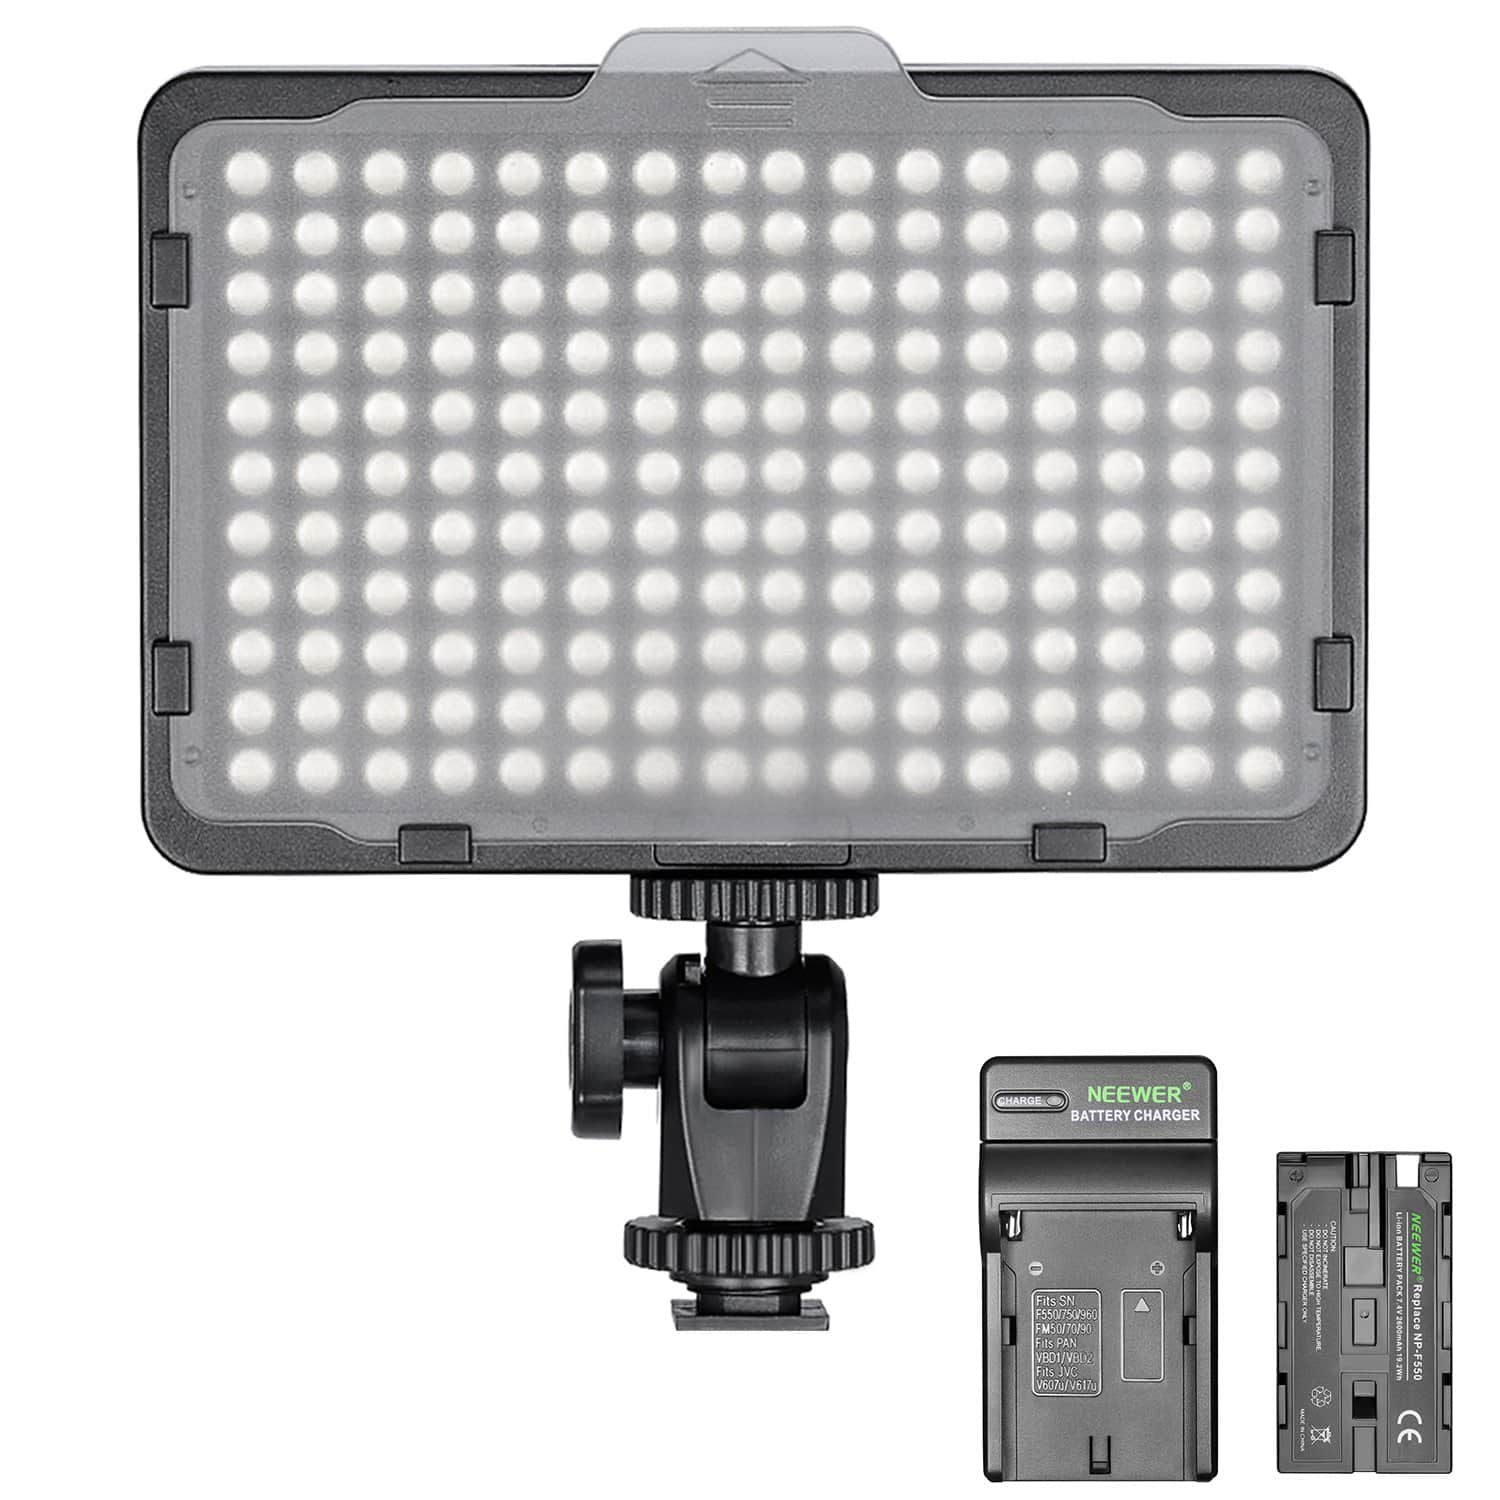 Neewer 176 LED Dimmable Video Light (2600mAh Battery & Charger Included) - $26.24 + Free Shipping